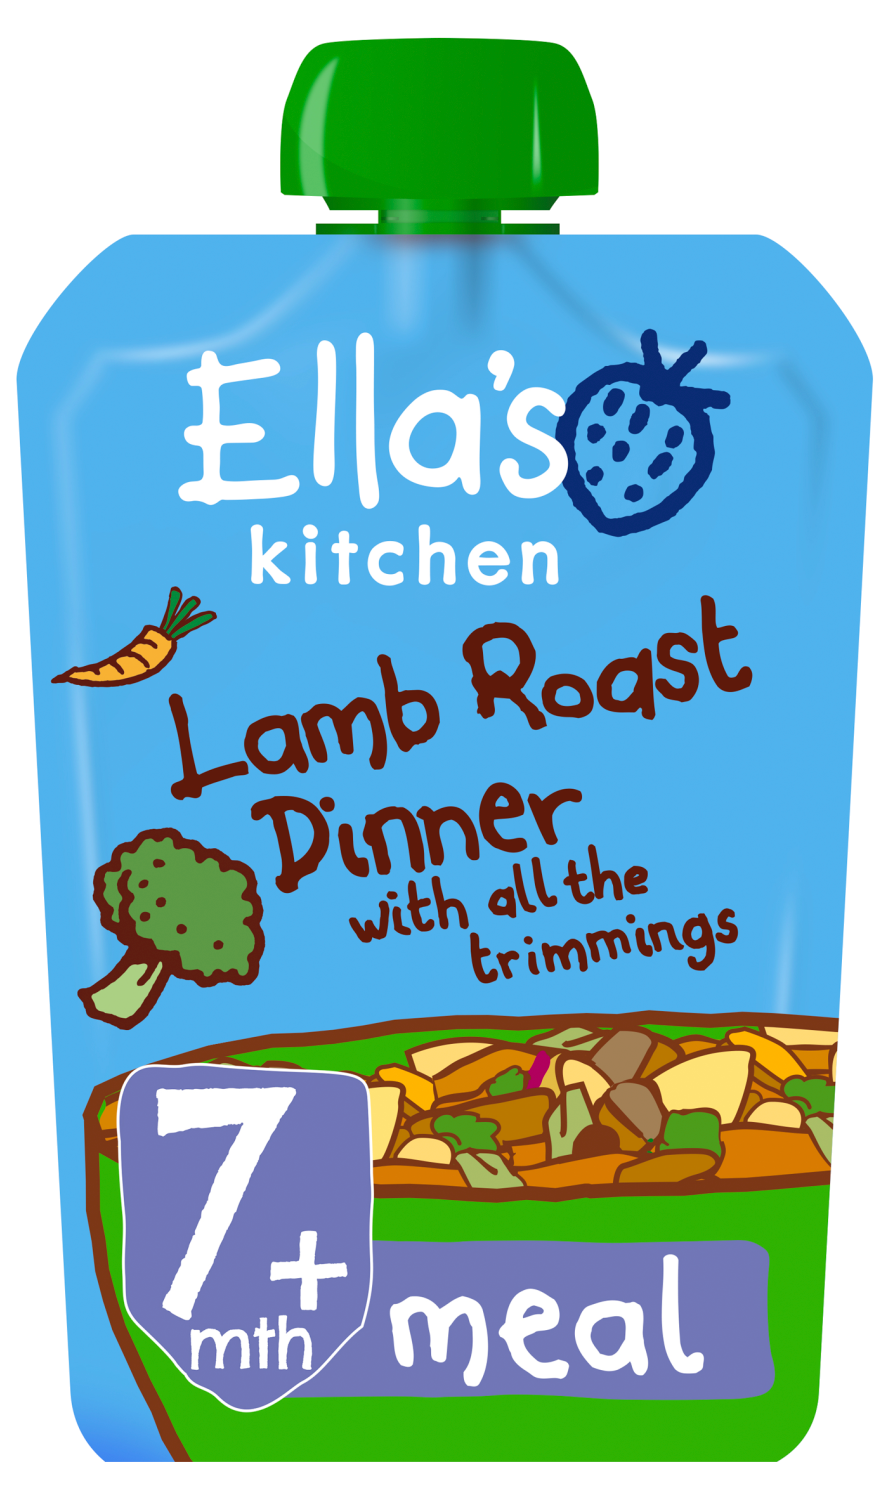 Ellas kitchen lamb roast dinner trimmings pouch 7 months front of pack O